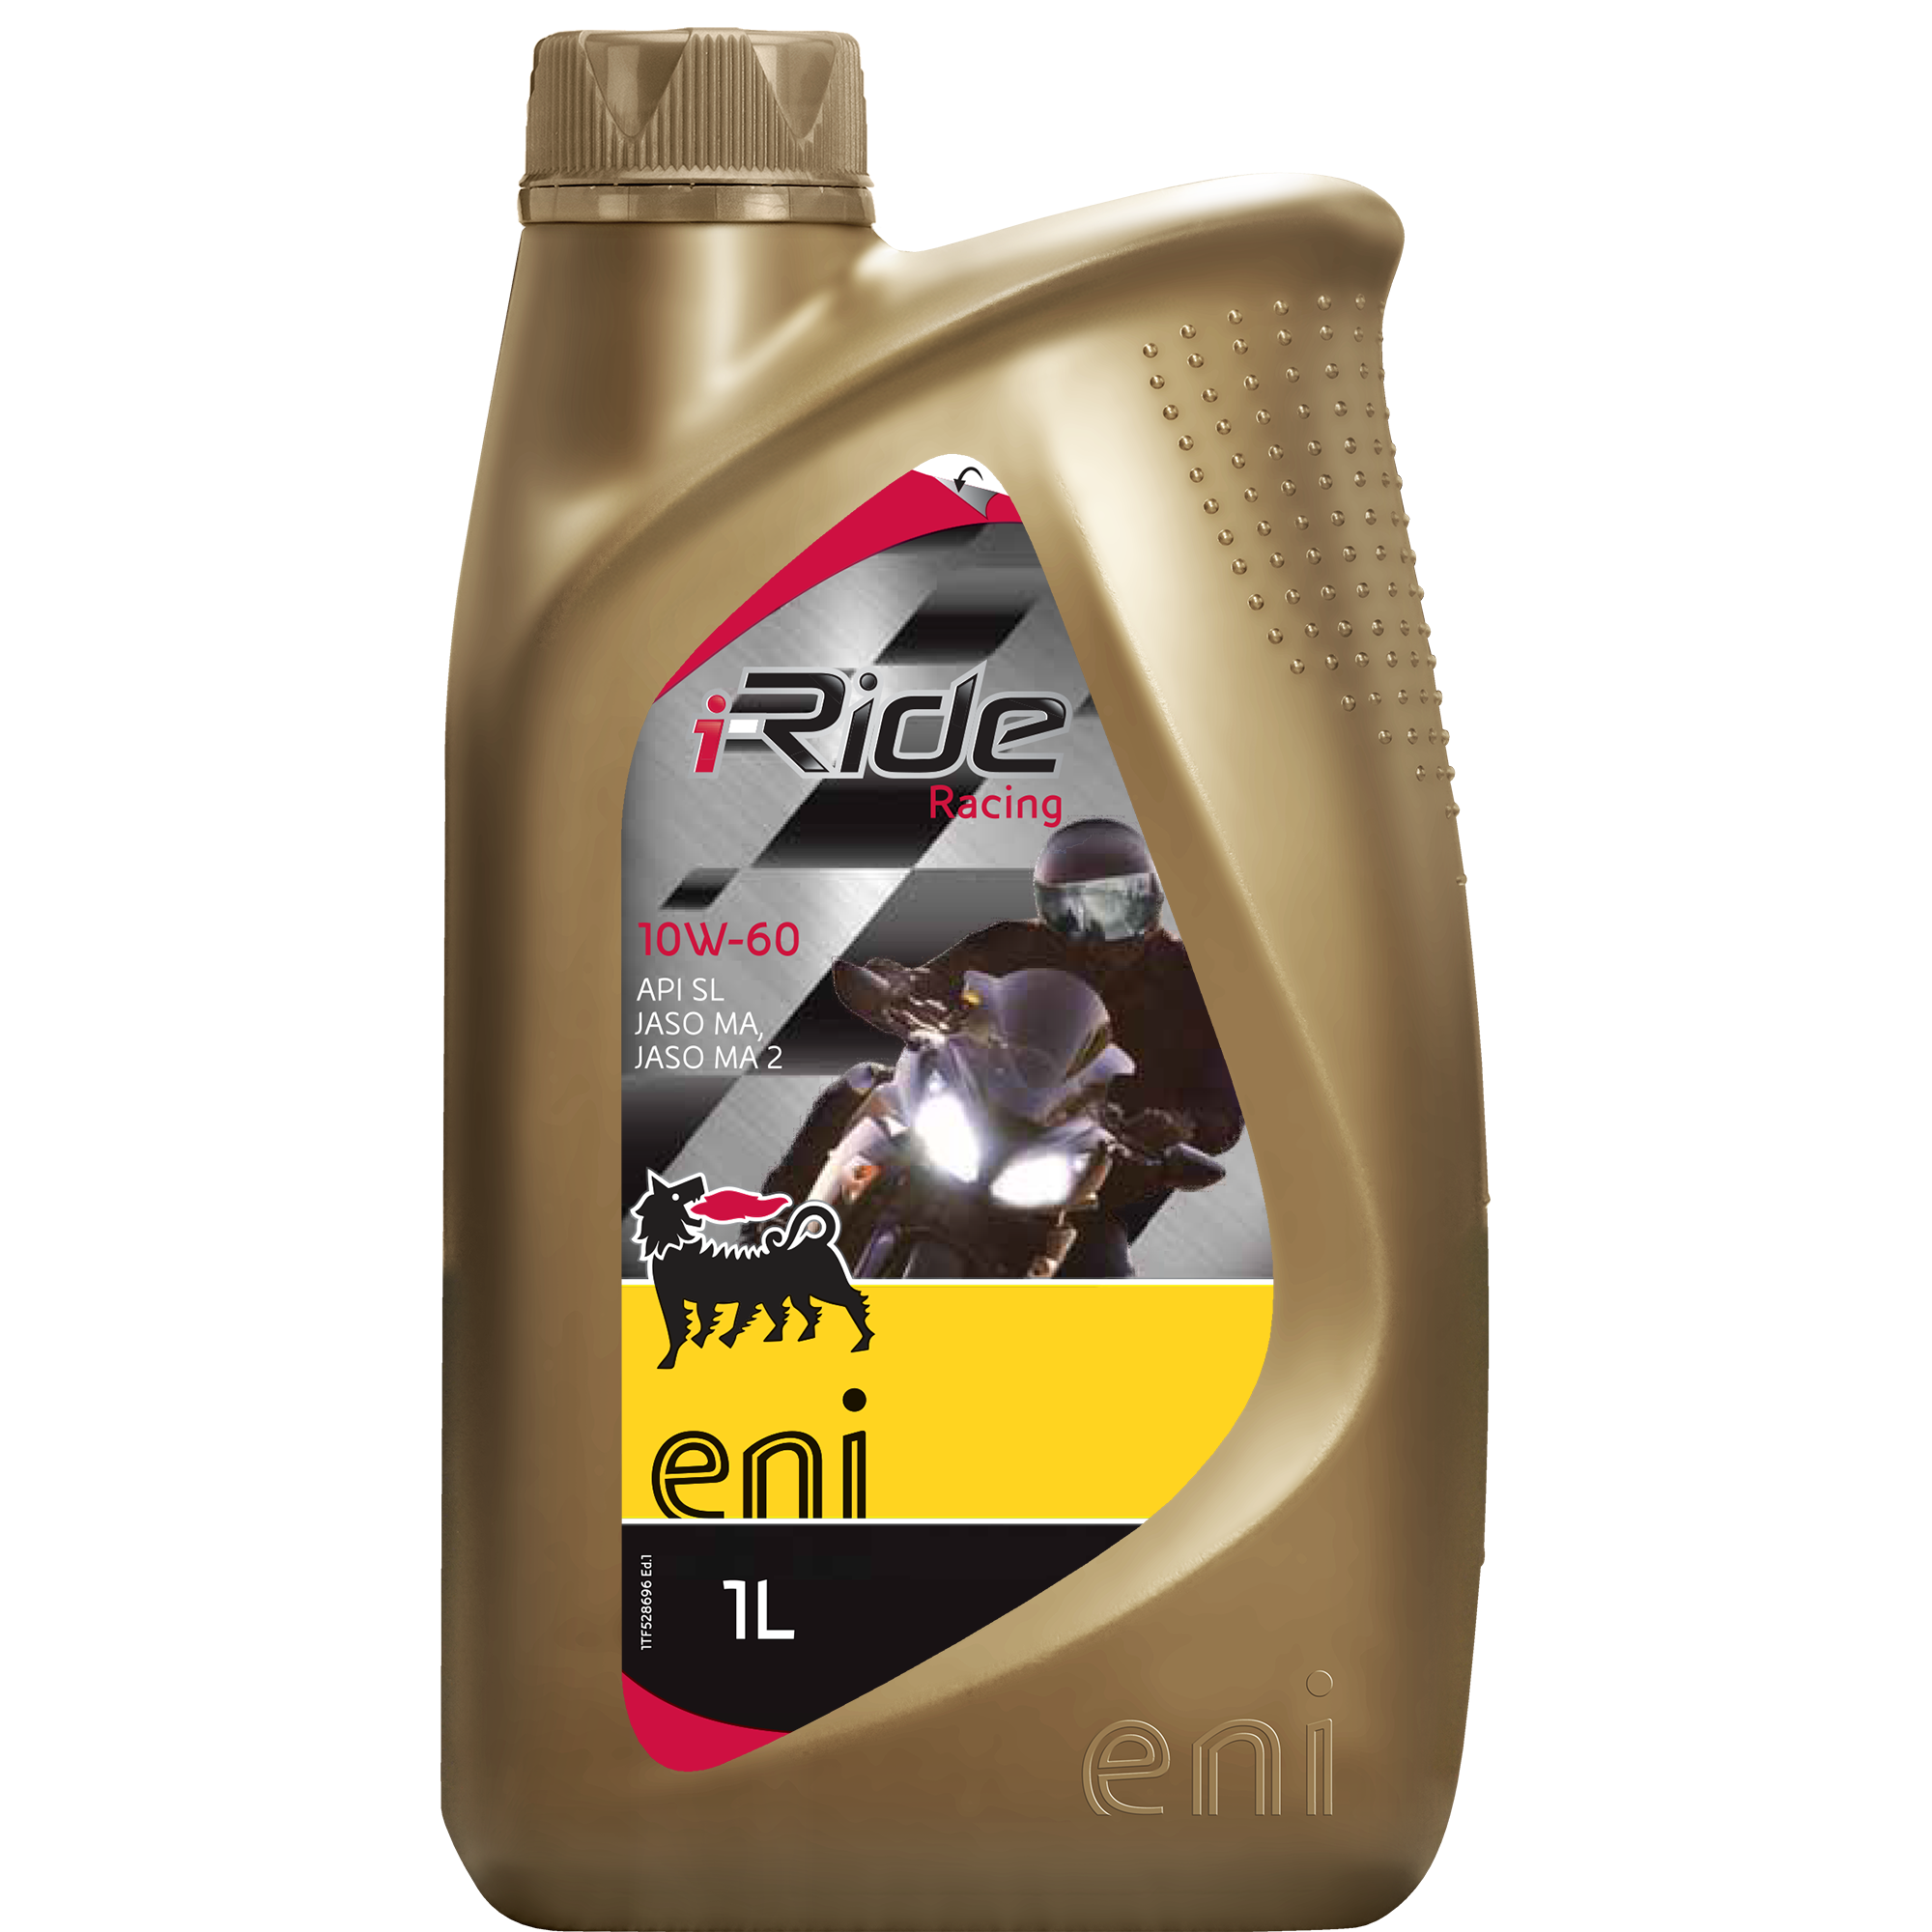 eni i-Ride Racing 10W-60 1.0 LIT